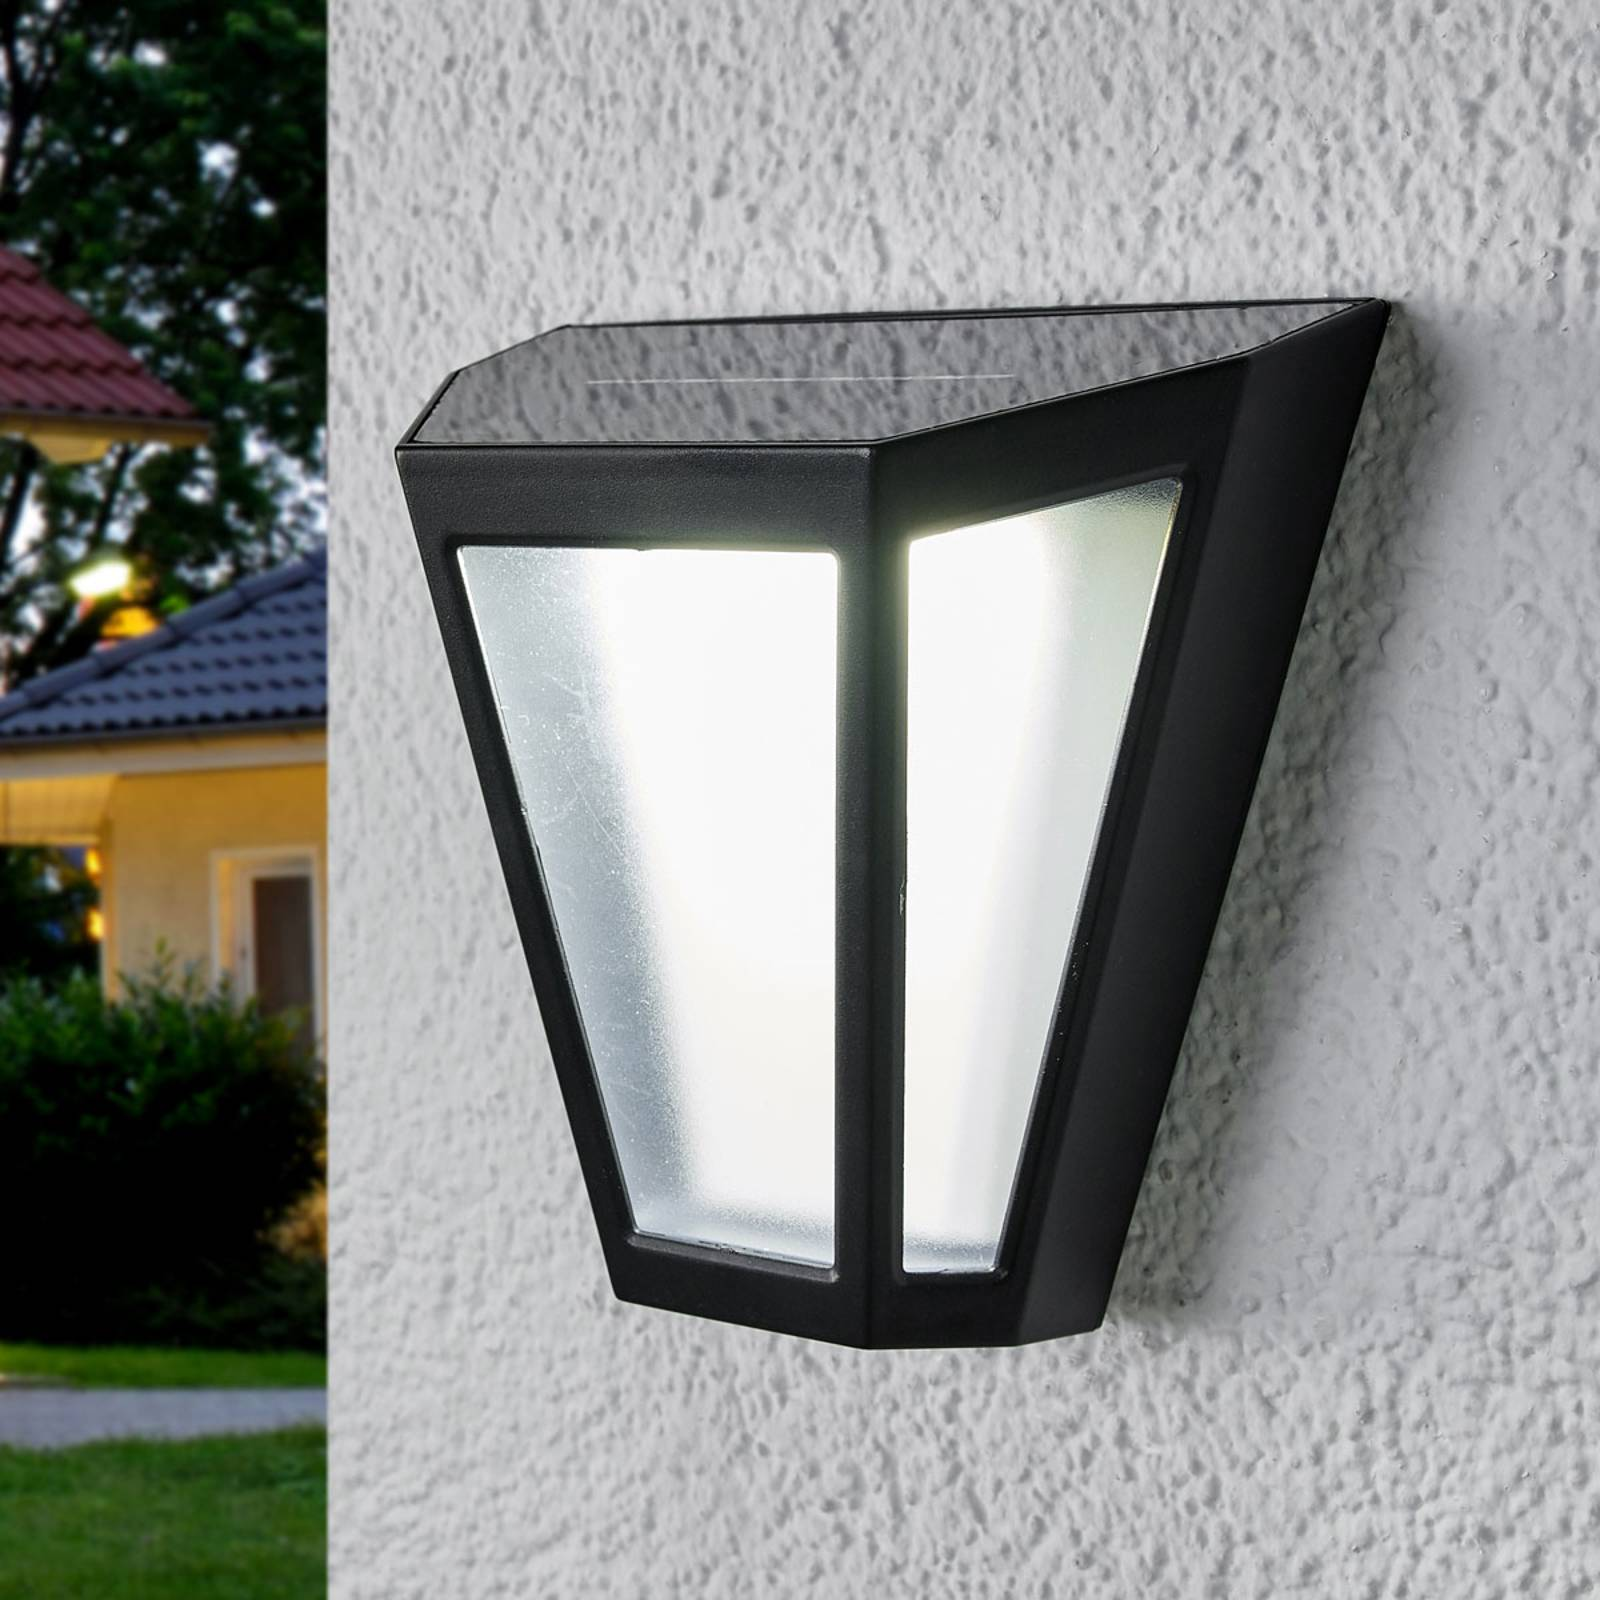 LED solar wall light Yago, frosted lampshade from Lindby